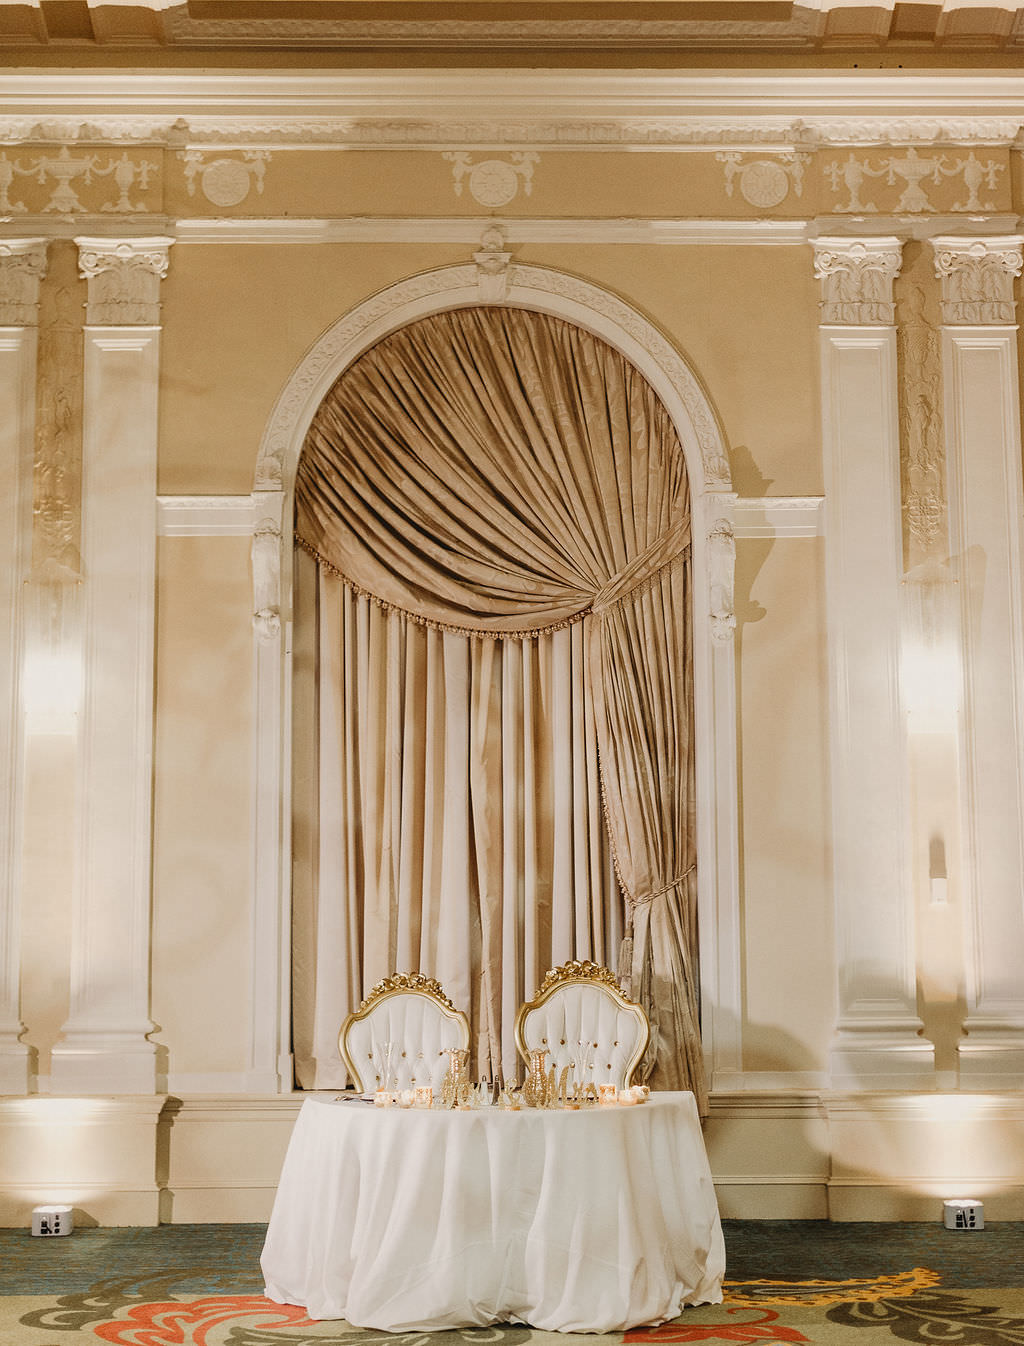 Classic Traditional Ballroom Wedding Reception Decor, Sweetheart Table with White Tablecloth, Fancy Gold and Ivory High Back Chairs and Champagne Gold Draping Background   St. Pete Hotel Wedding Venue The Vinoy Renaissance